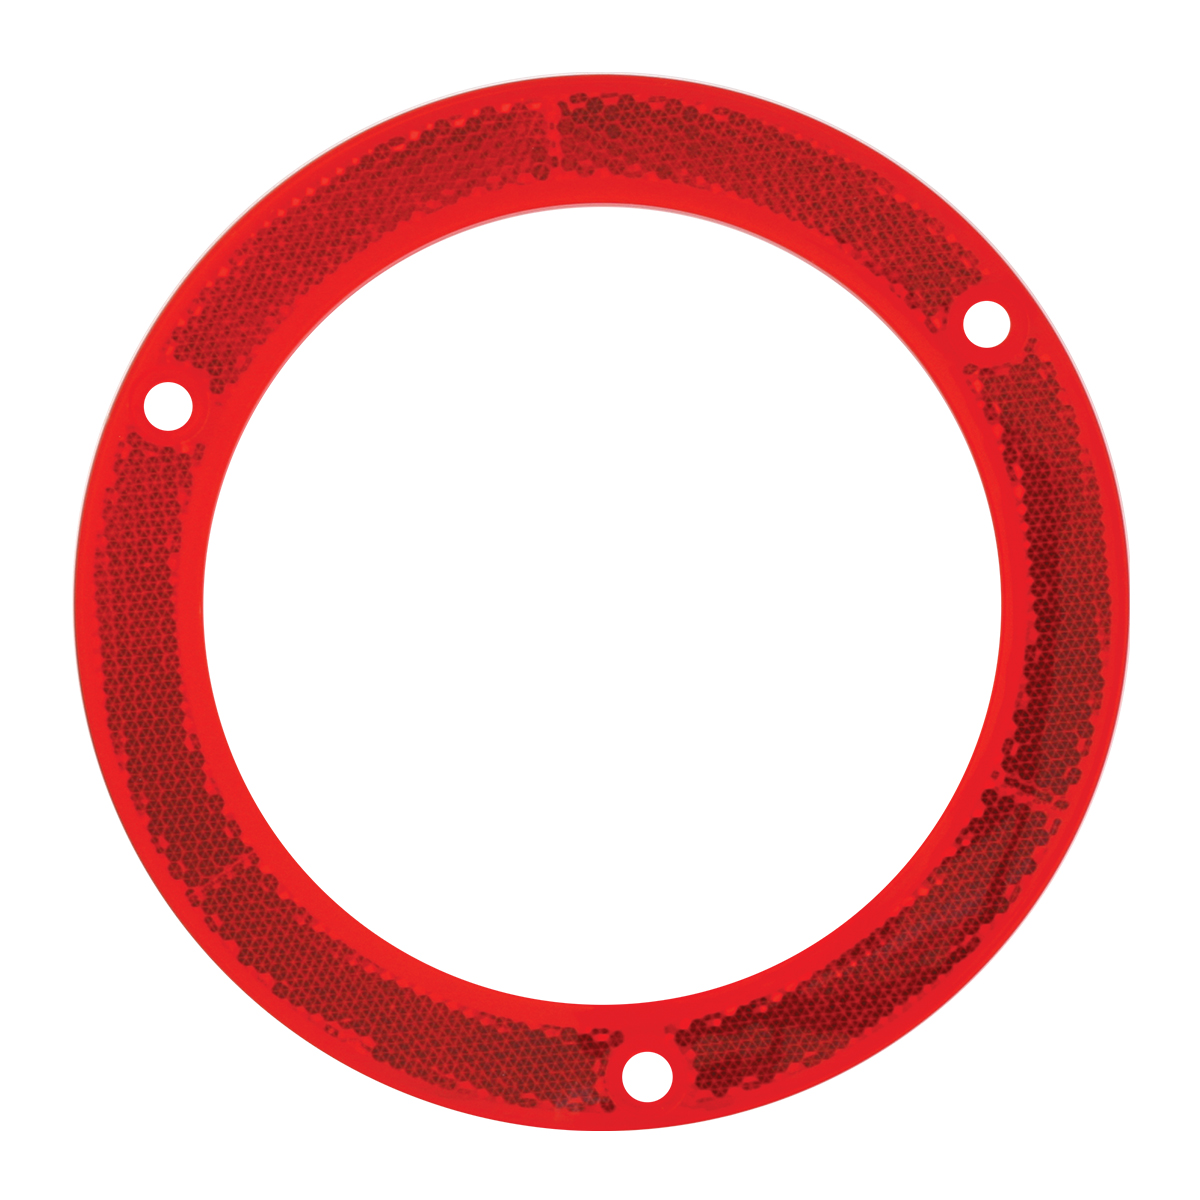 "81635 Red Reflector Ring for 4"" Round Light"